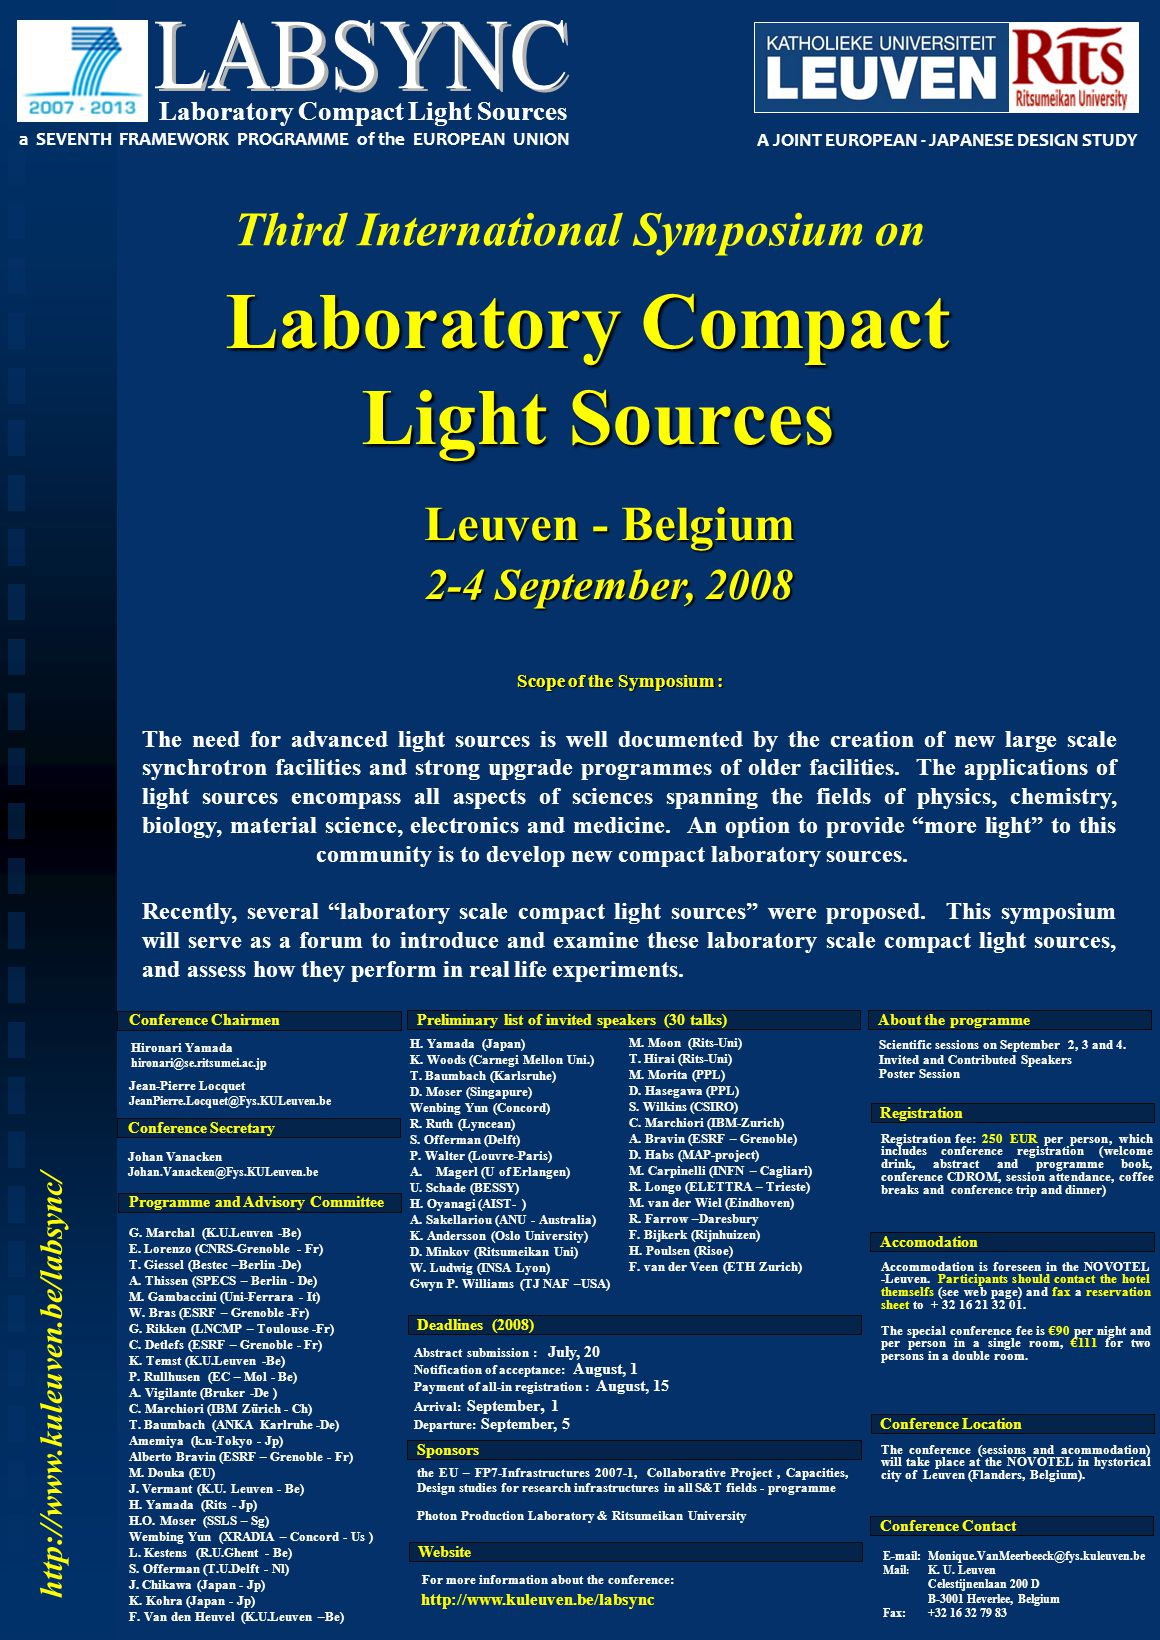 Laboratory Compact Light Sources Light Sources Leuven - Belgium 2-4 September, 2008 Scope of the Symposium : The need for advanced light sources is we